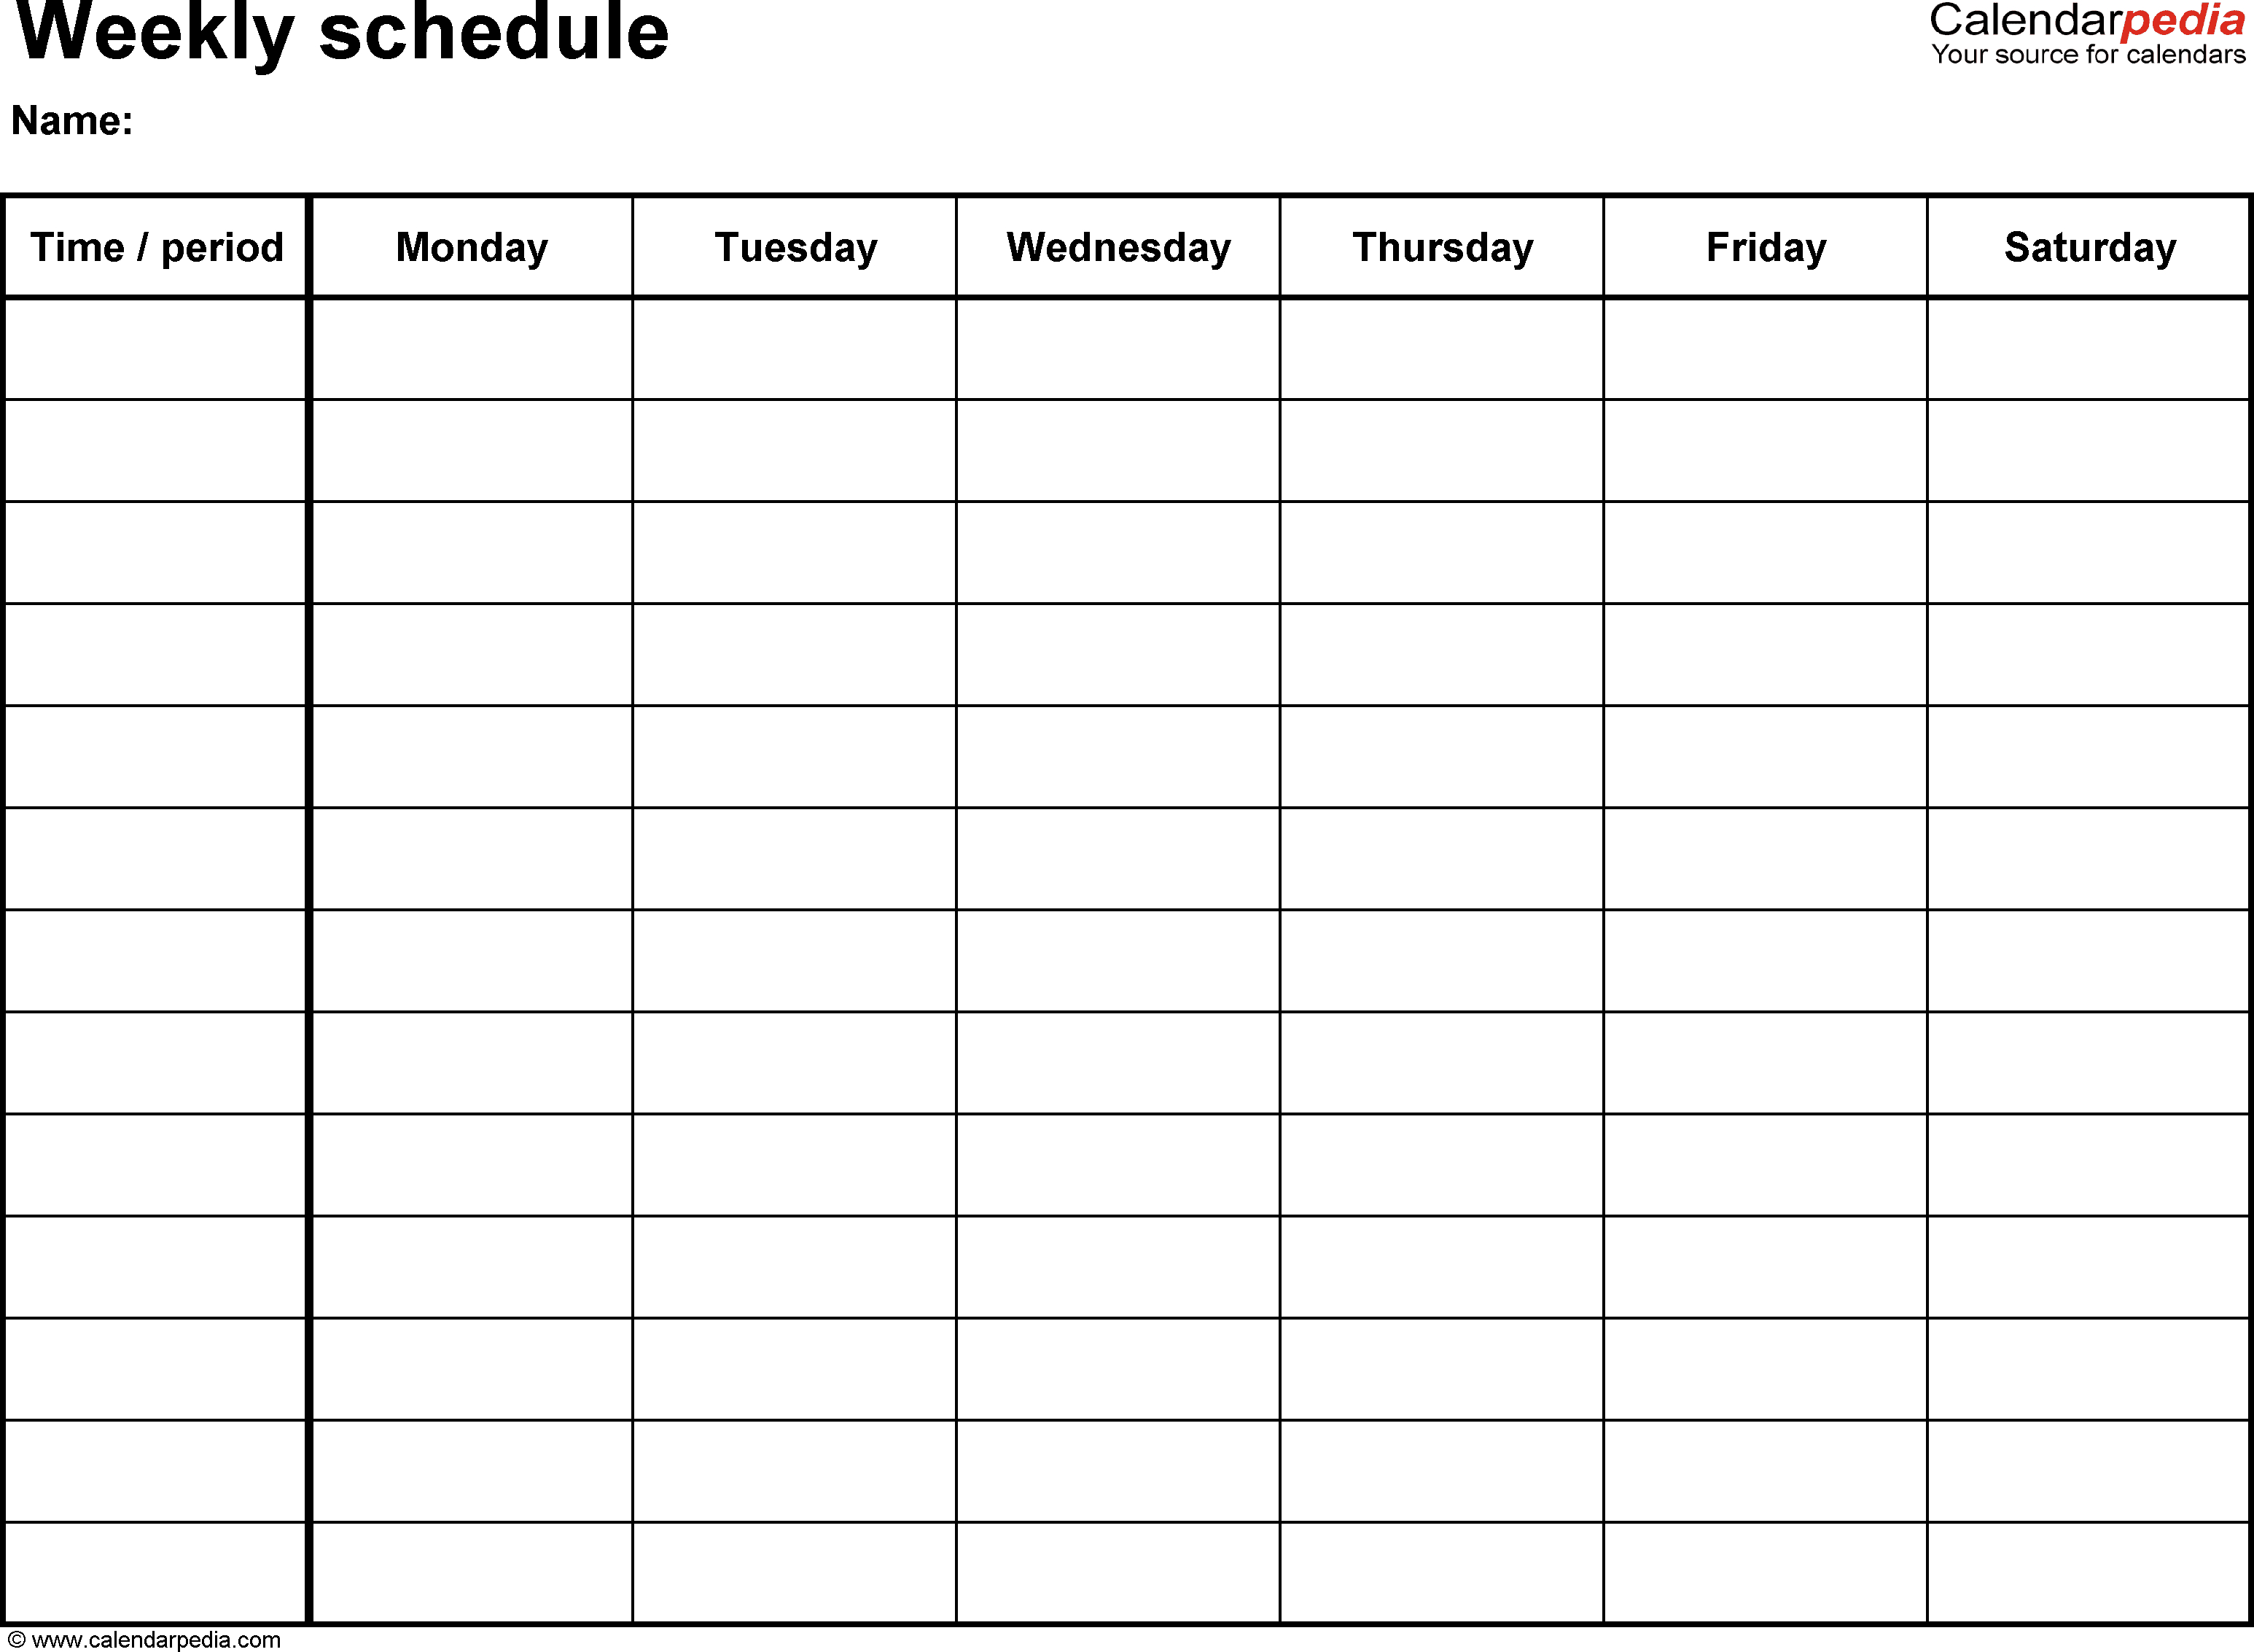 Free Weekly Schedule Templates For Excel - 18 Templates - Free Printable Daily Schedule Chart